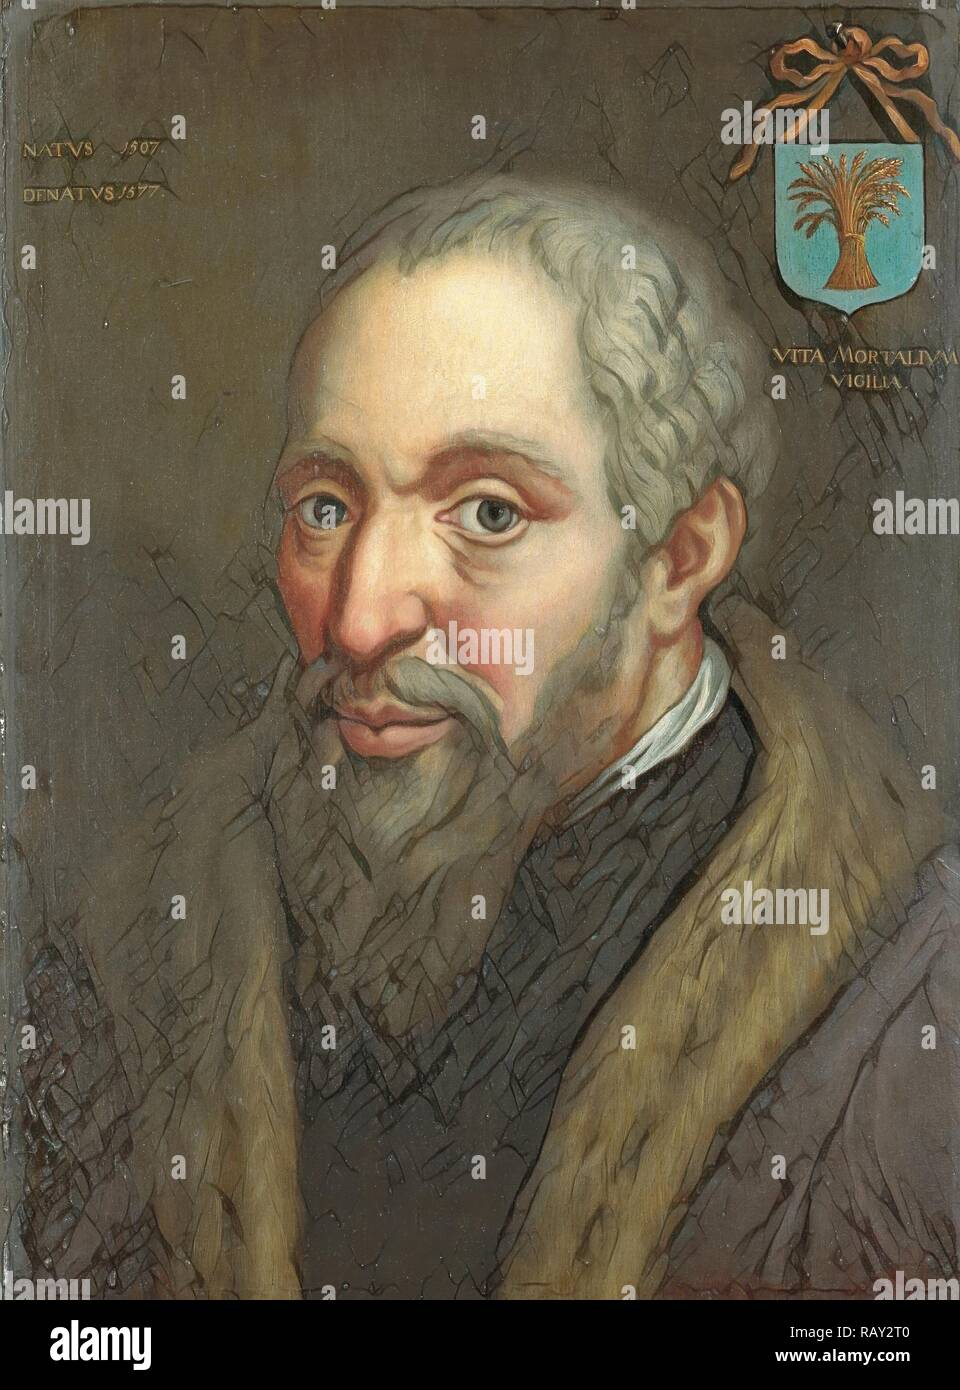 Portrait of Viglius ab Zuichemus, Frisian Jurist, President of the Privy Council and Member of the Council of State reimagined - Stock Image